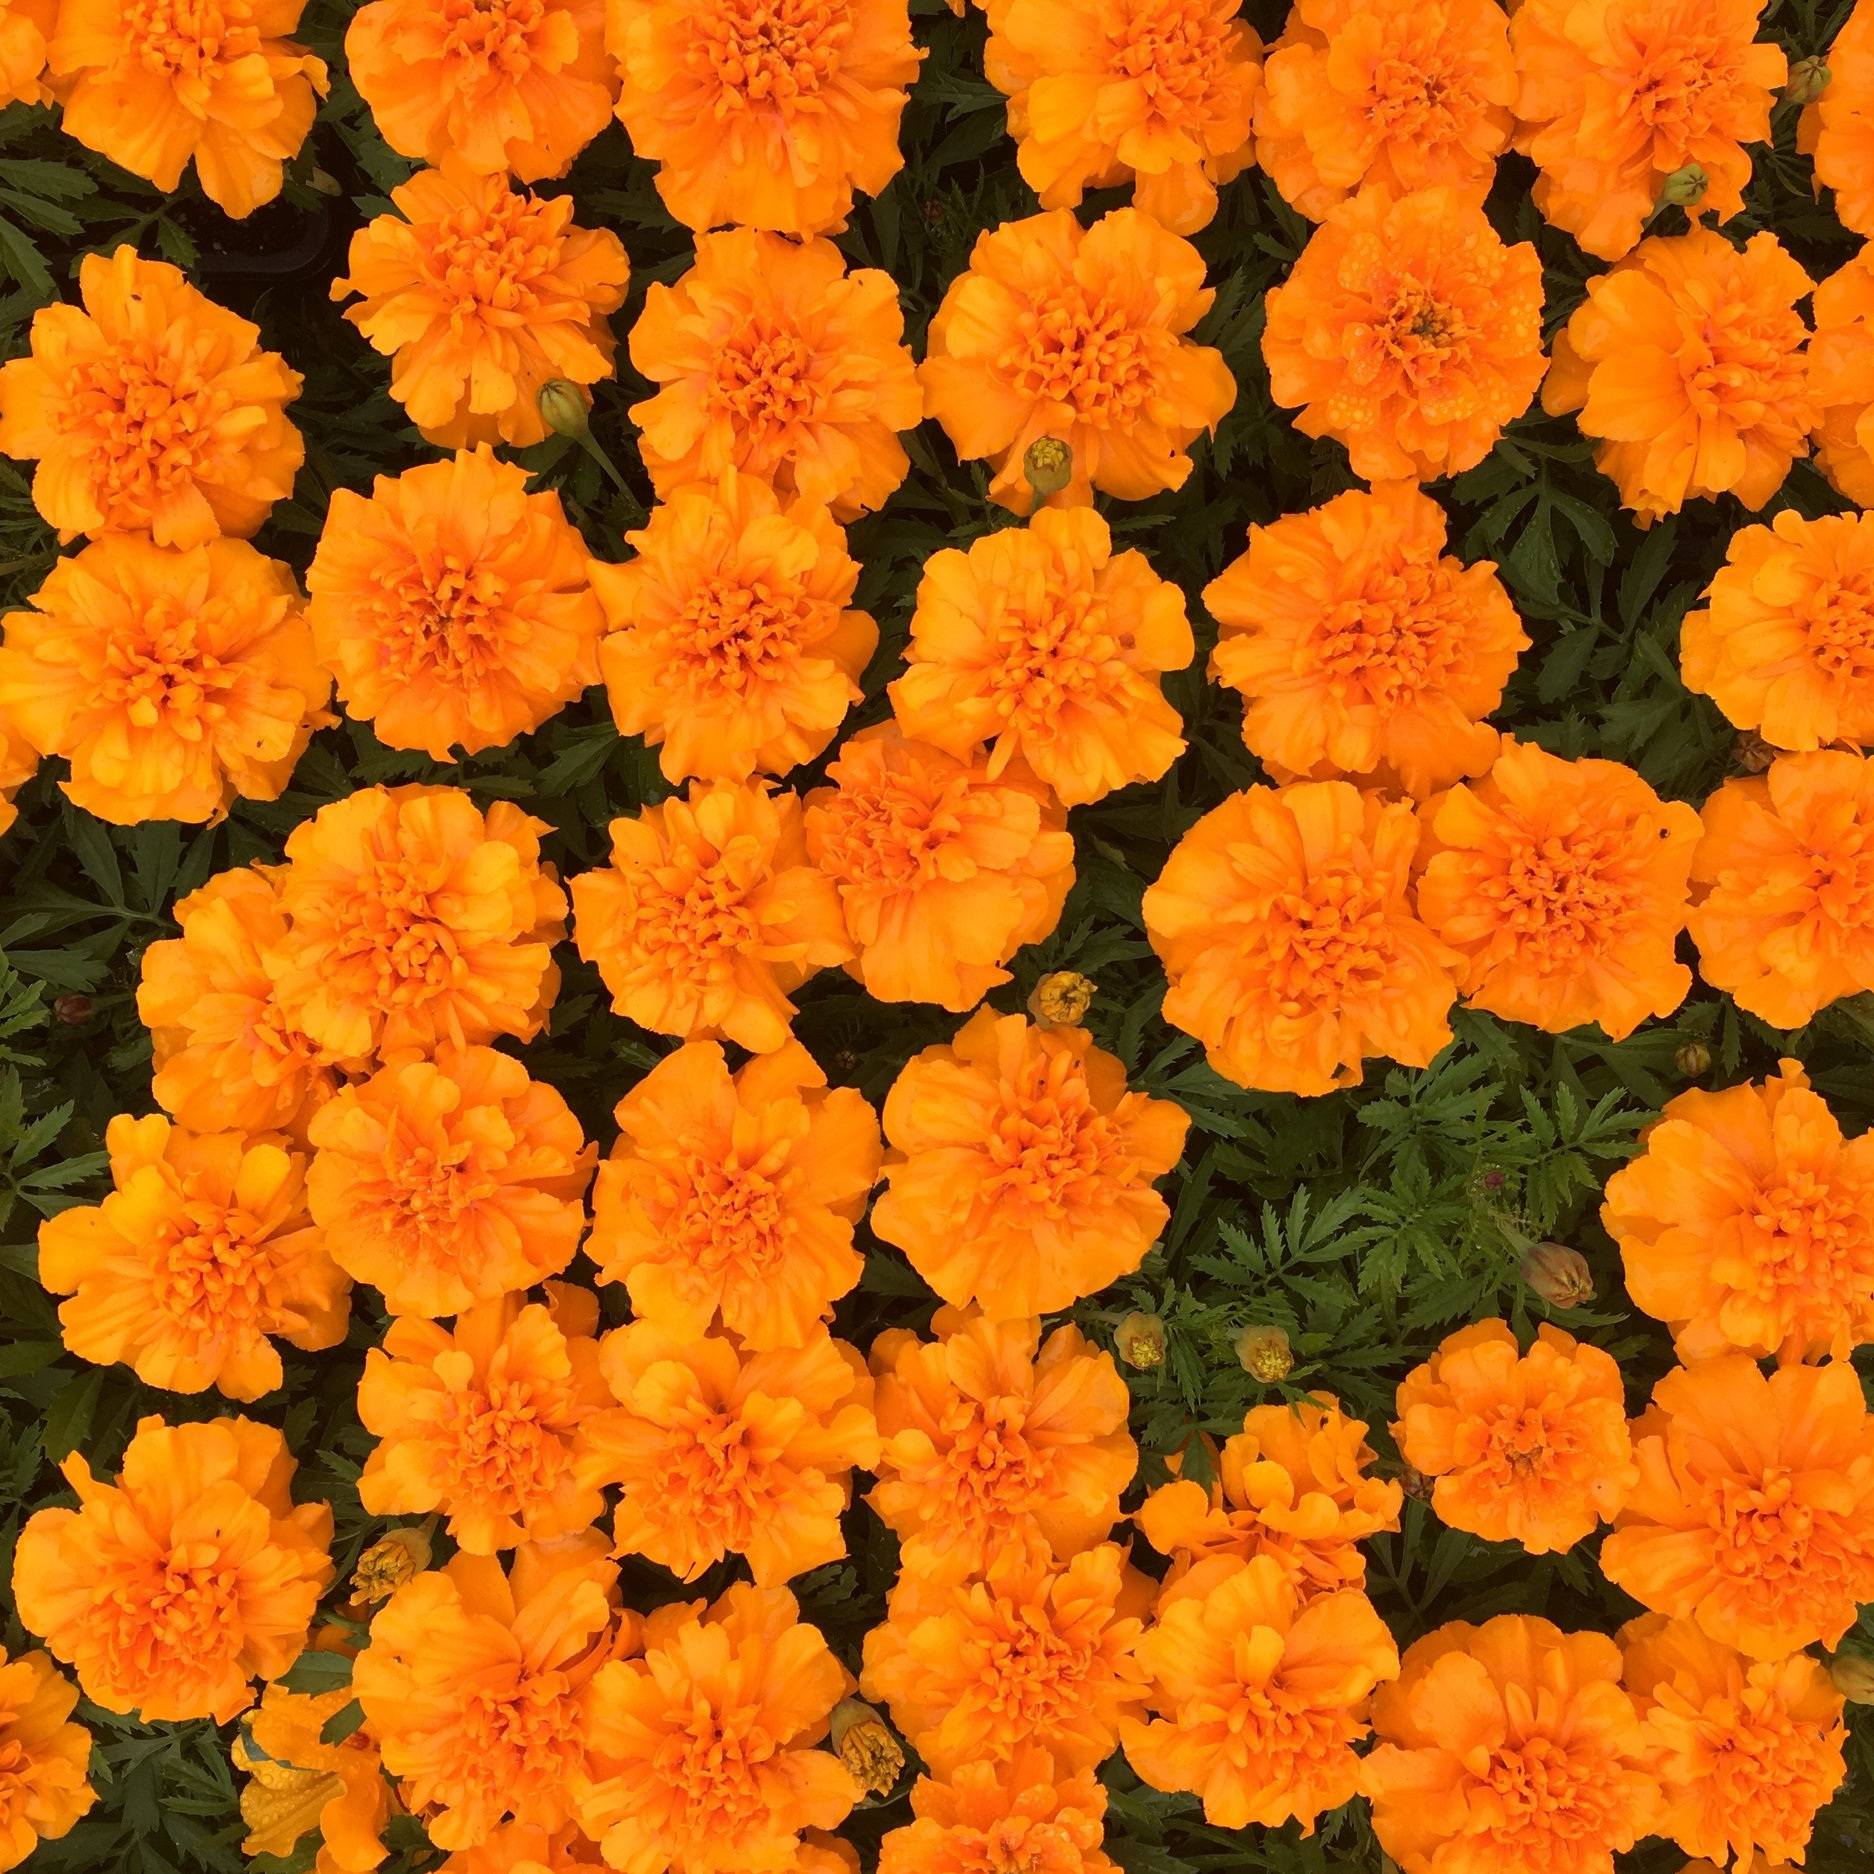 Behind the scenes - Checkout the images and info below for a behind the scenes look at the inspiration and making of Priya Dreams of Marigolds and Masala from the author and illustrator.